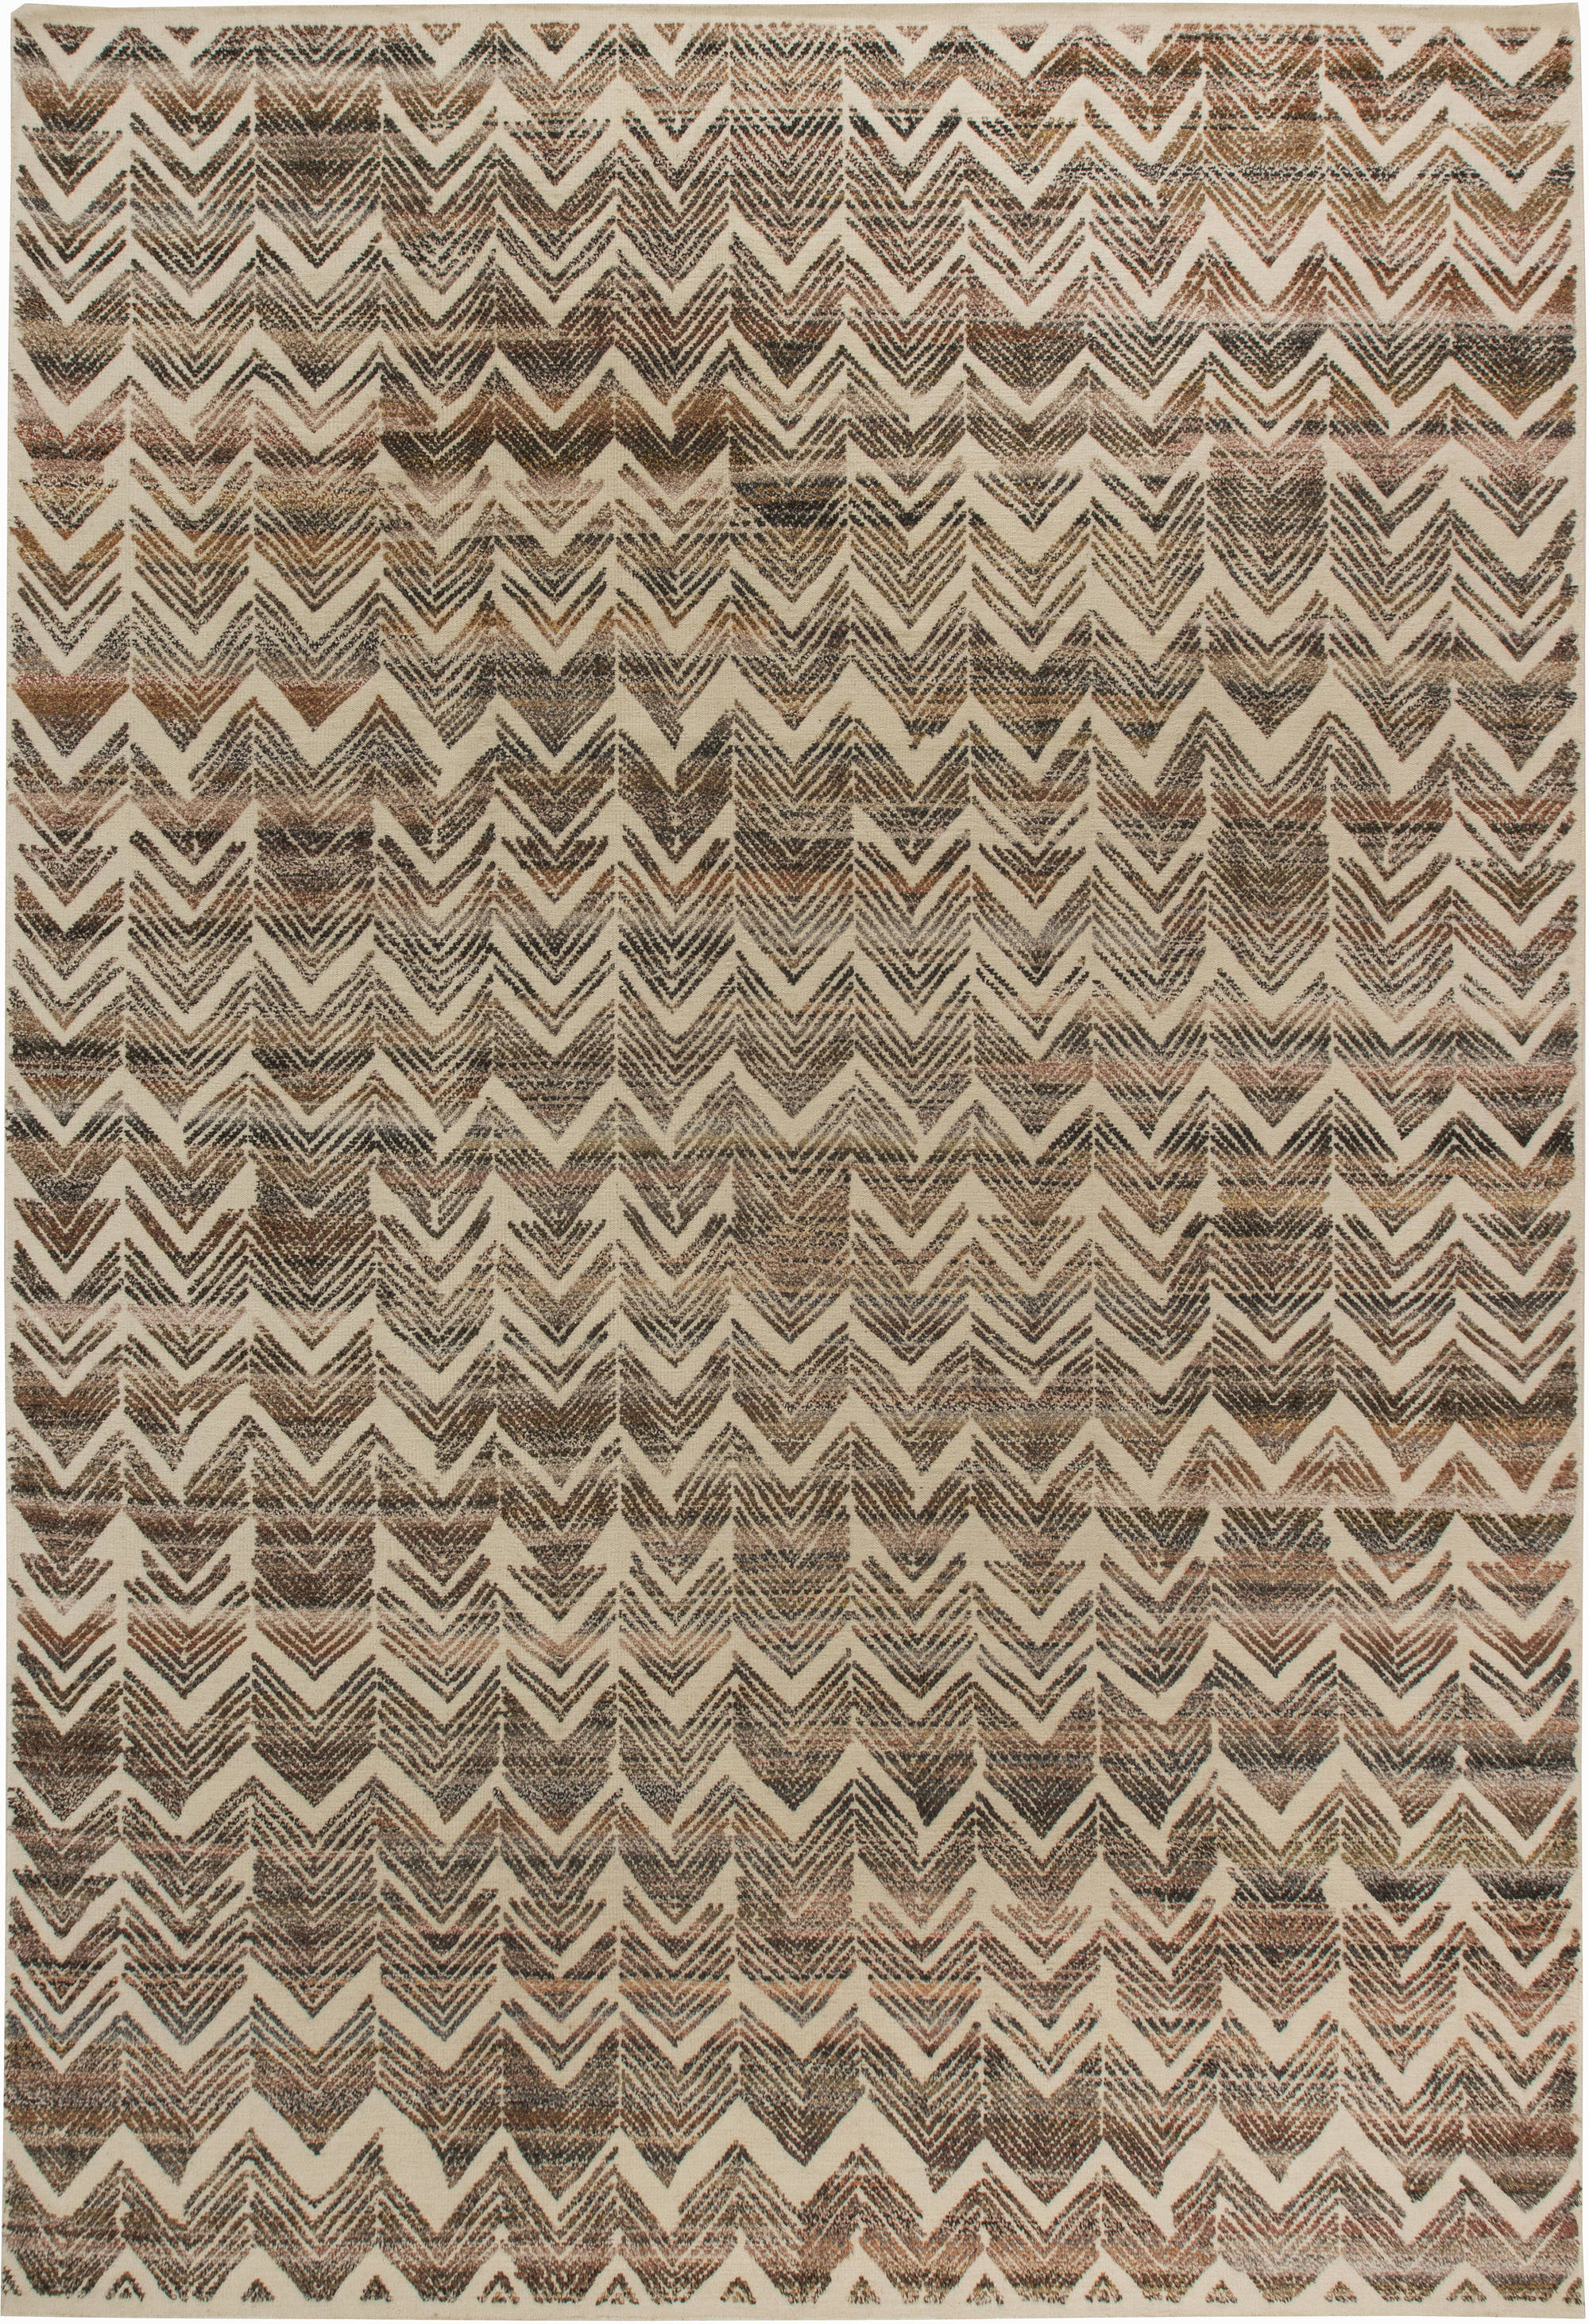 Textured Chevron Rug N11445